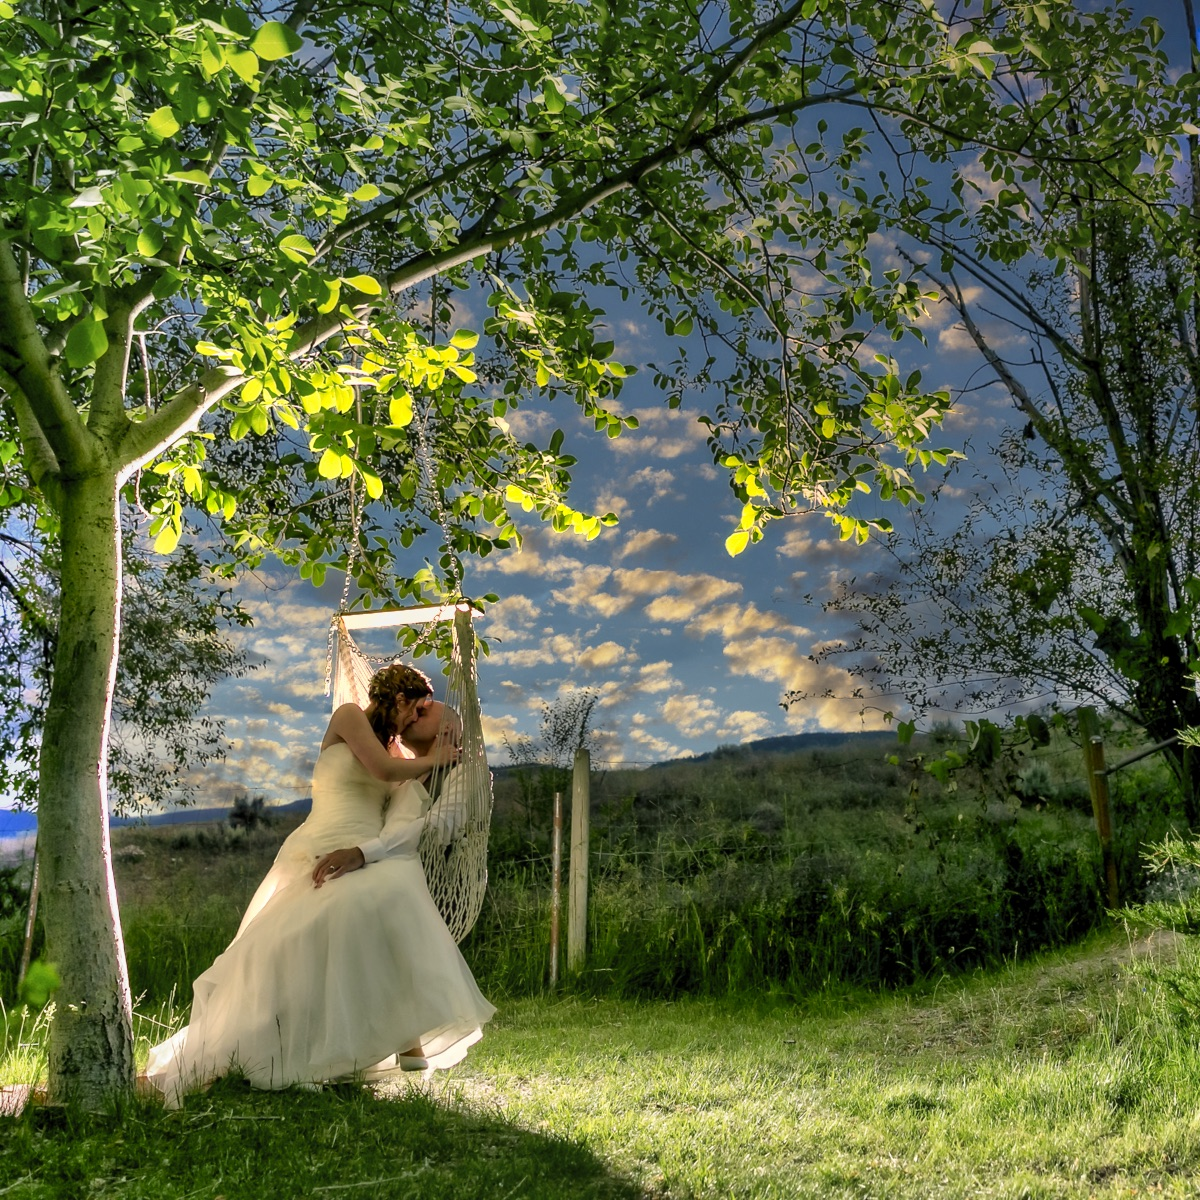 Bianca and Scott swinging on their wedding day at sunset